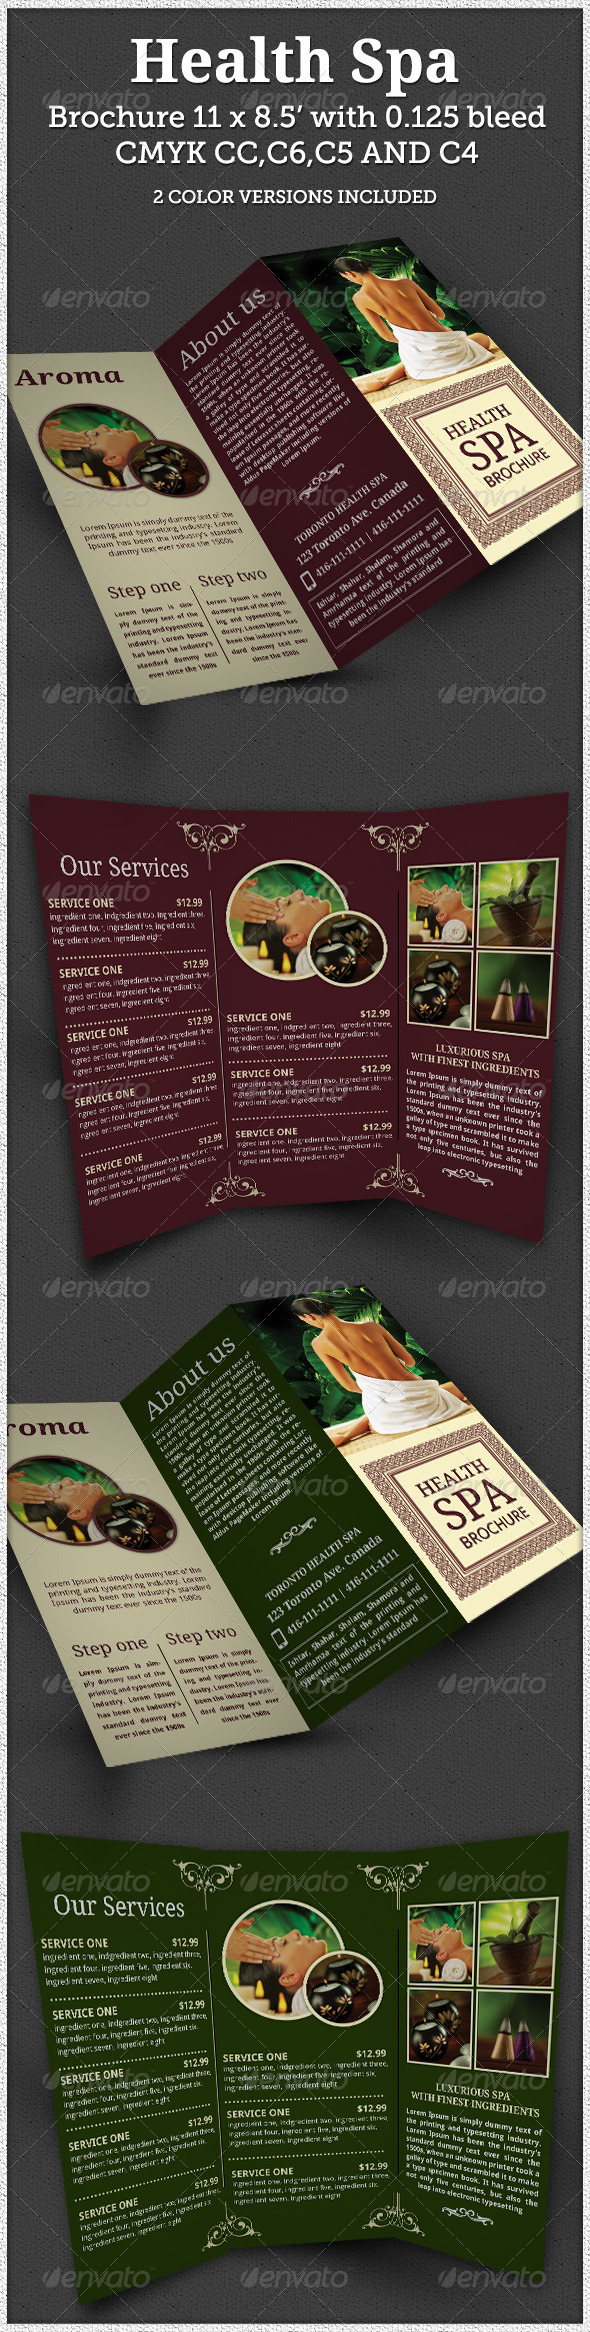 GraphicRiver Health Spa Brochure Indesign Template 7614003